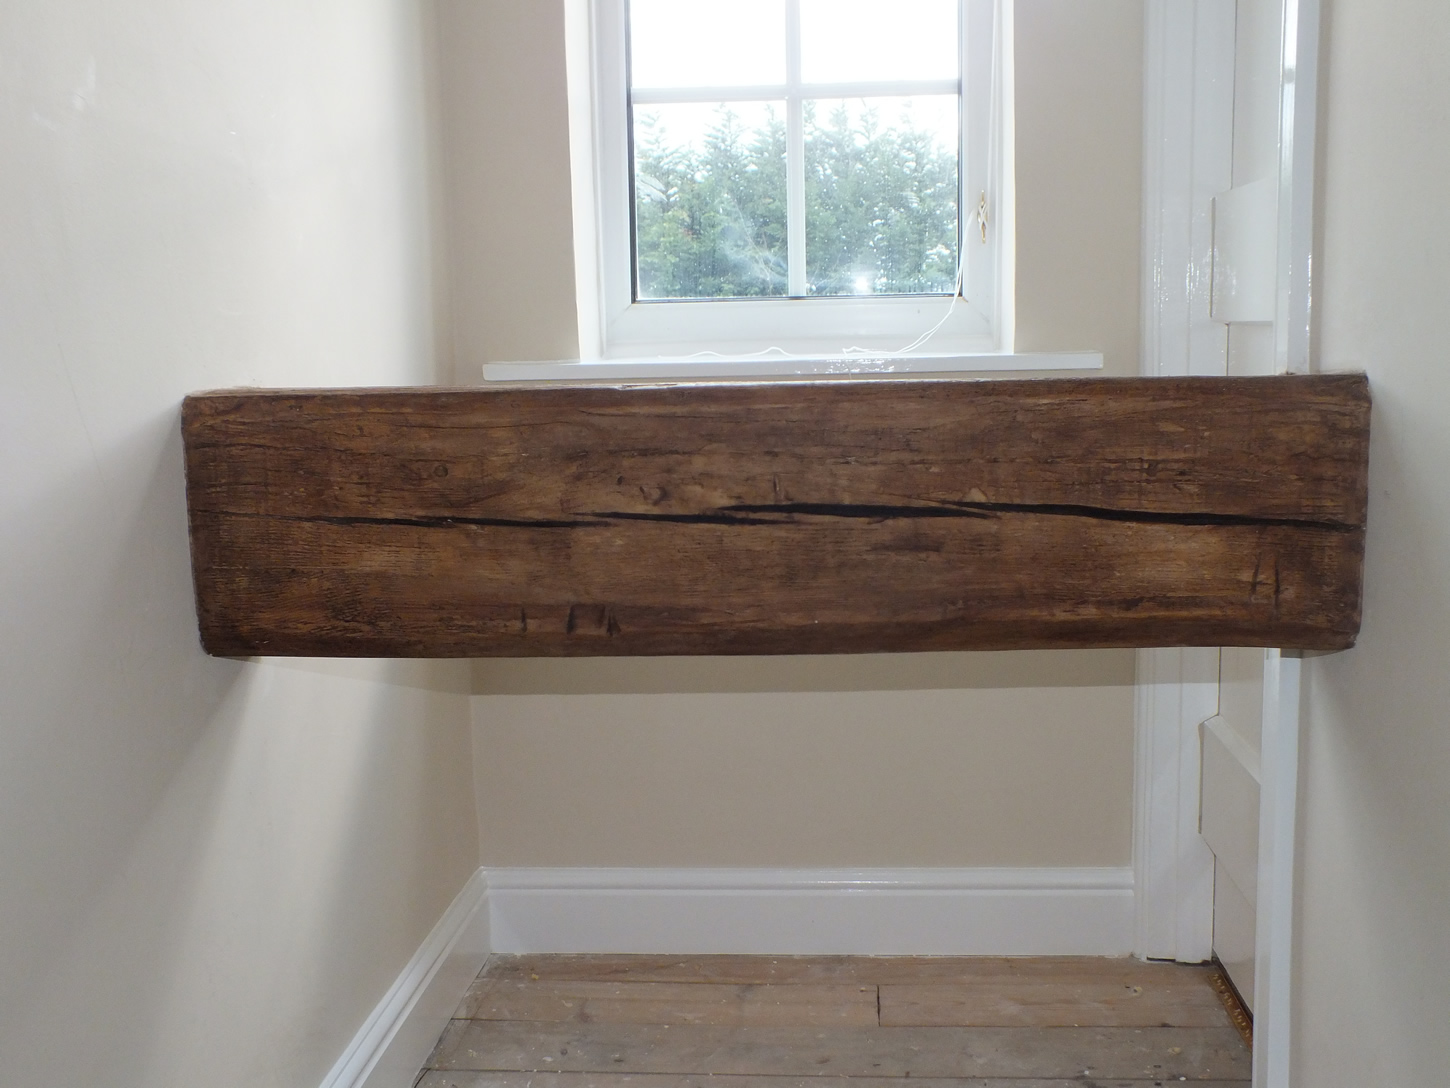 Replica oak beam